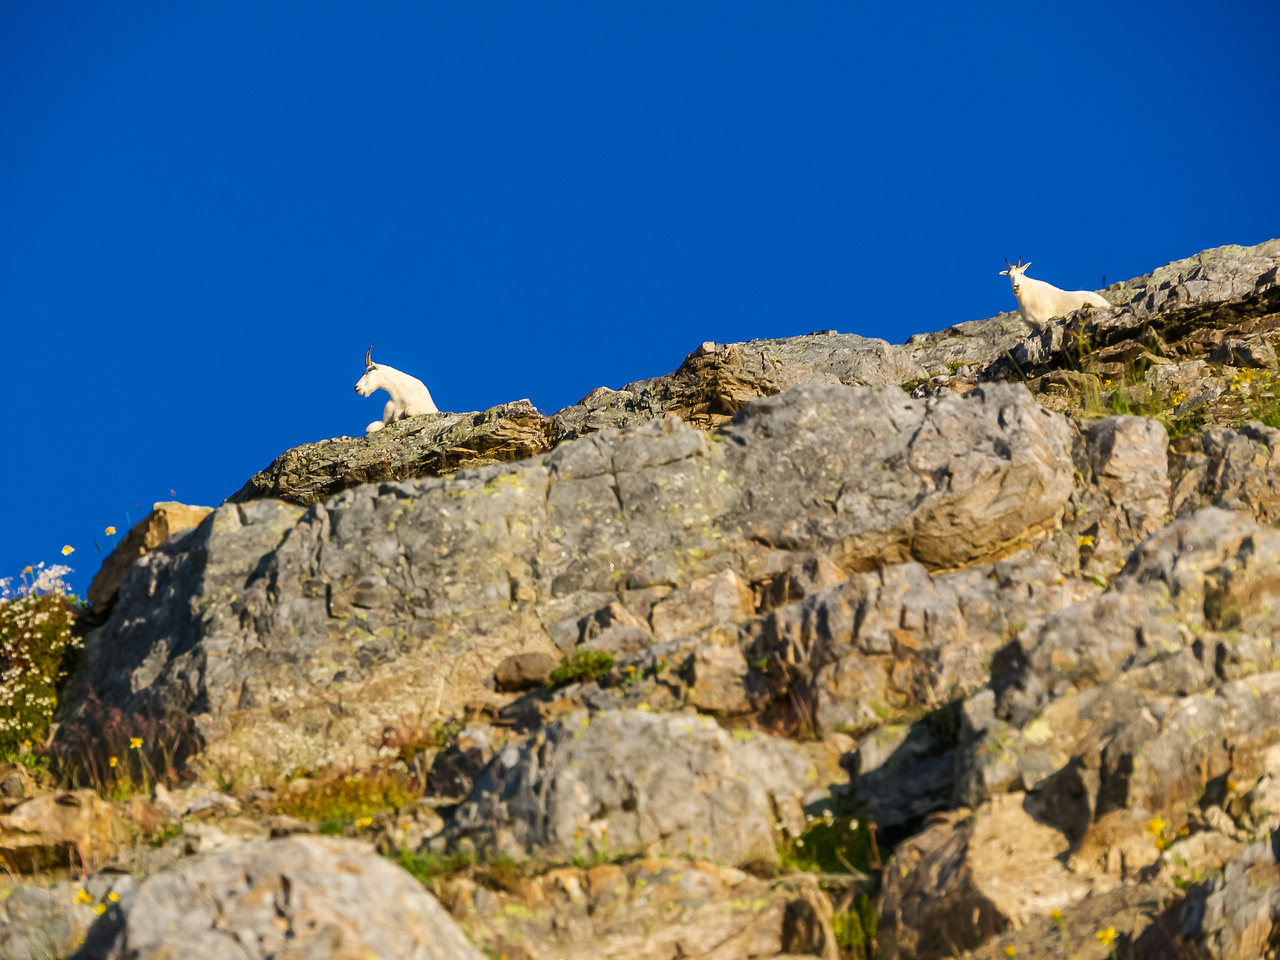 A magnificent billy goat and his mate gaze down at us as we climb towards them.